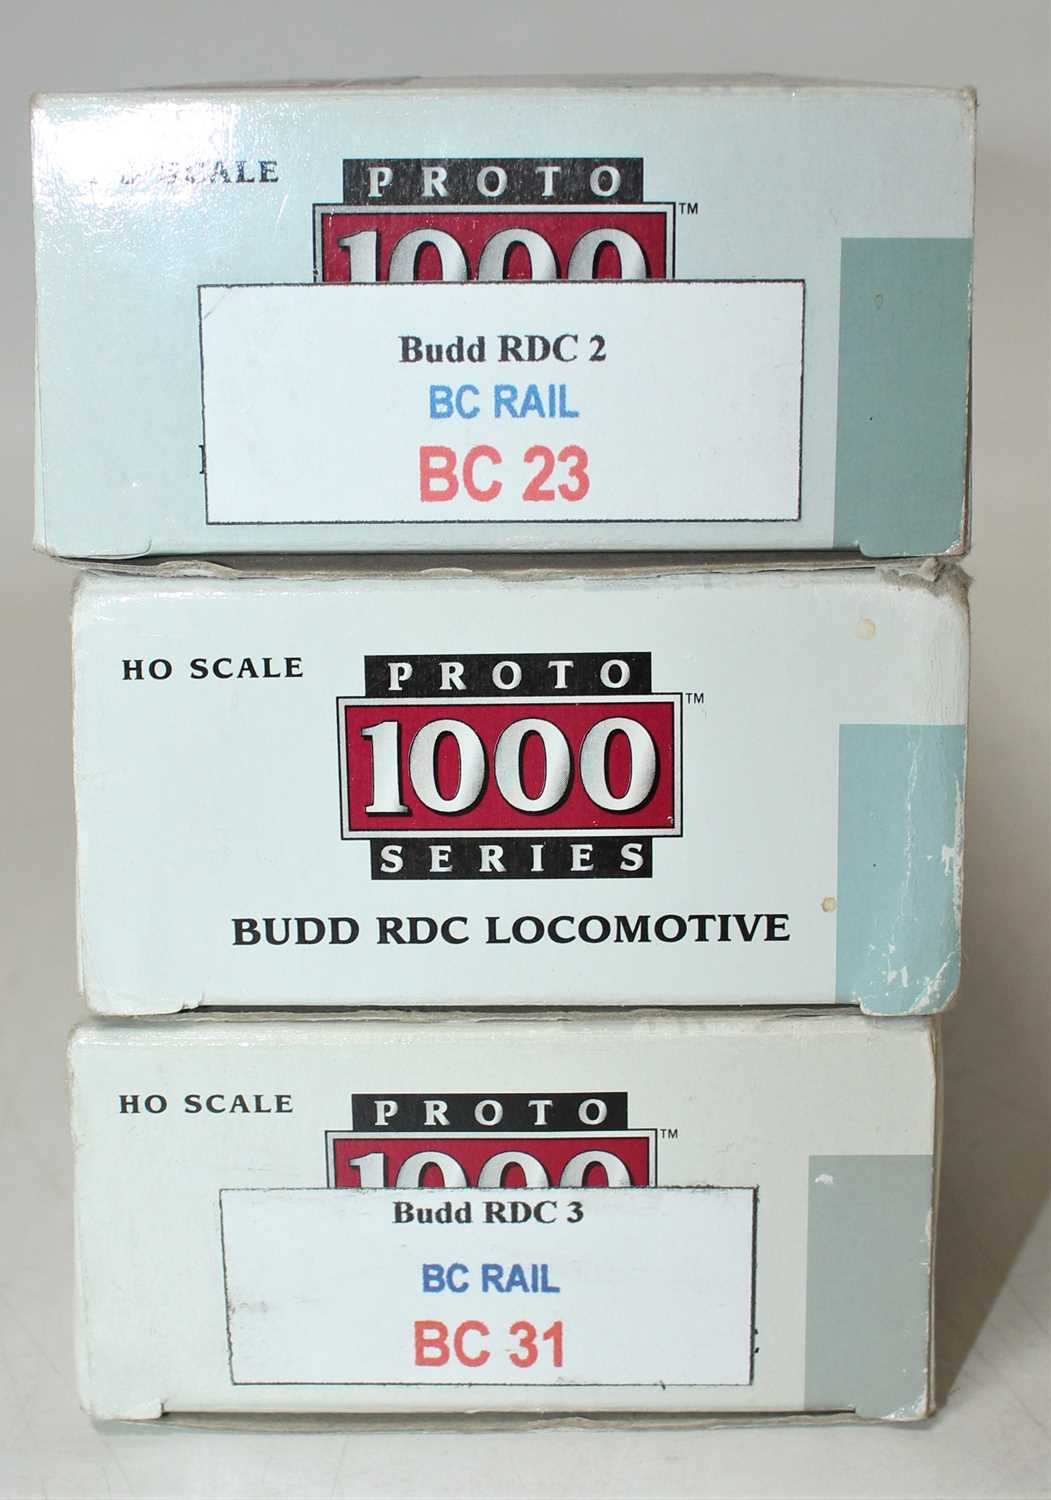 A Proto 1000 series H0 scale Budd RDC locomotive group to include a CP Rail 9100 Dayliner loco - Image 2 of 2